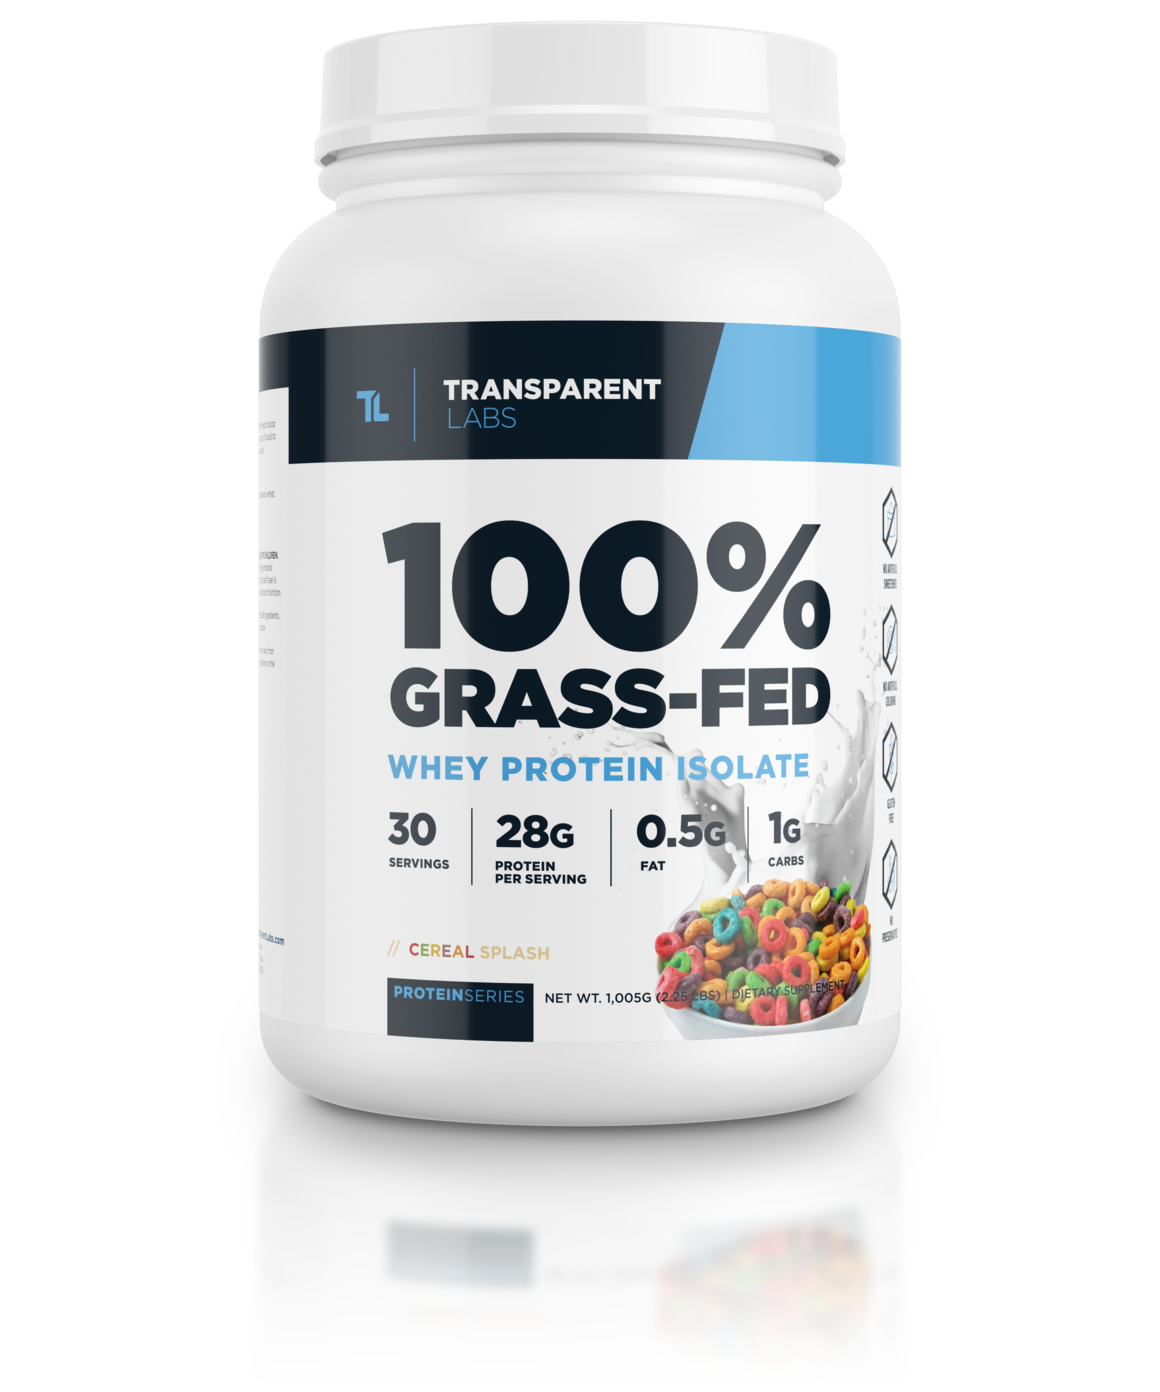 Top Picks From How To Beast Transparent Labs In 2020 Food Whey Protein Isolate Whey Isolate